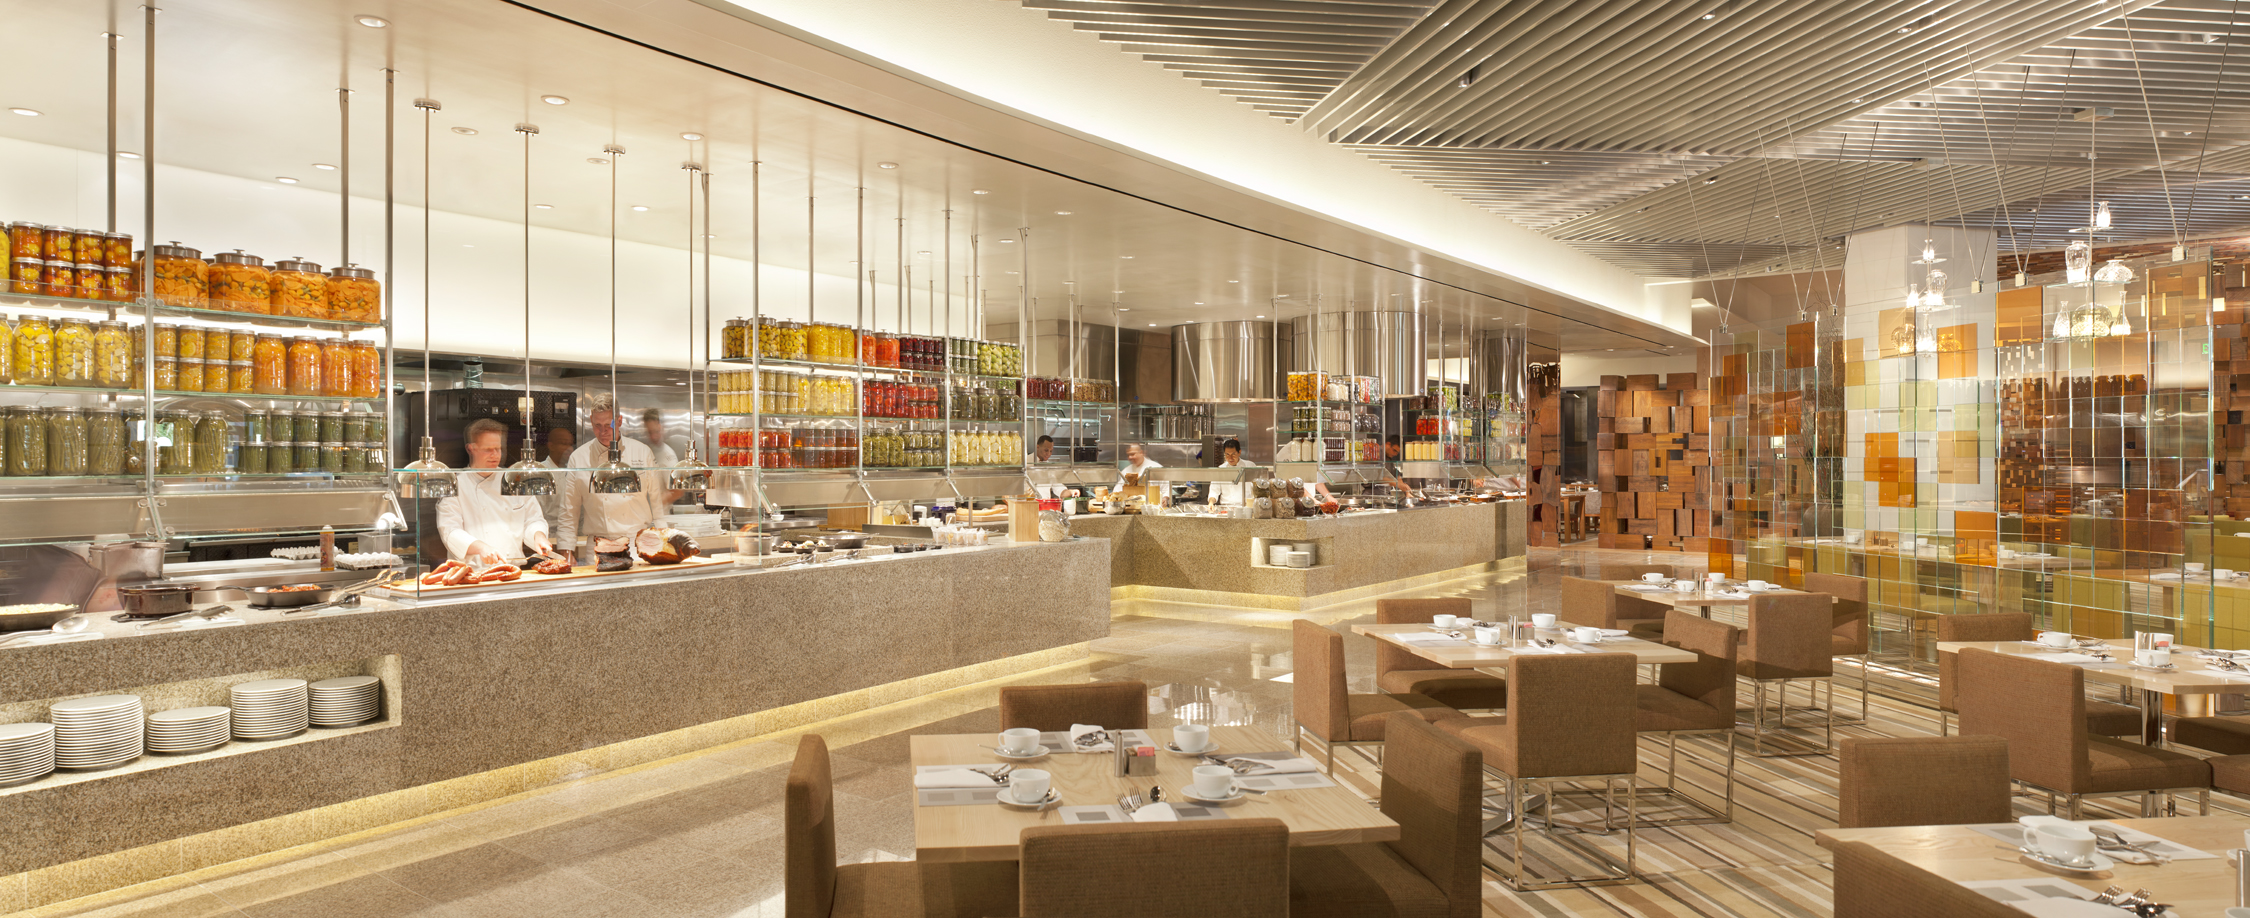 Buffet Cuisine Design Las Vegas Weekend Guide For Angelenos March 2017 Eater La